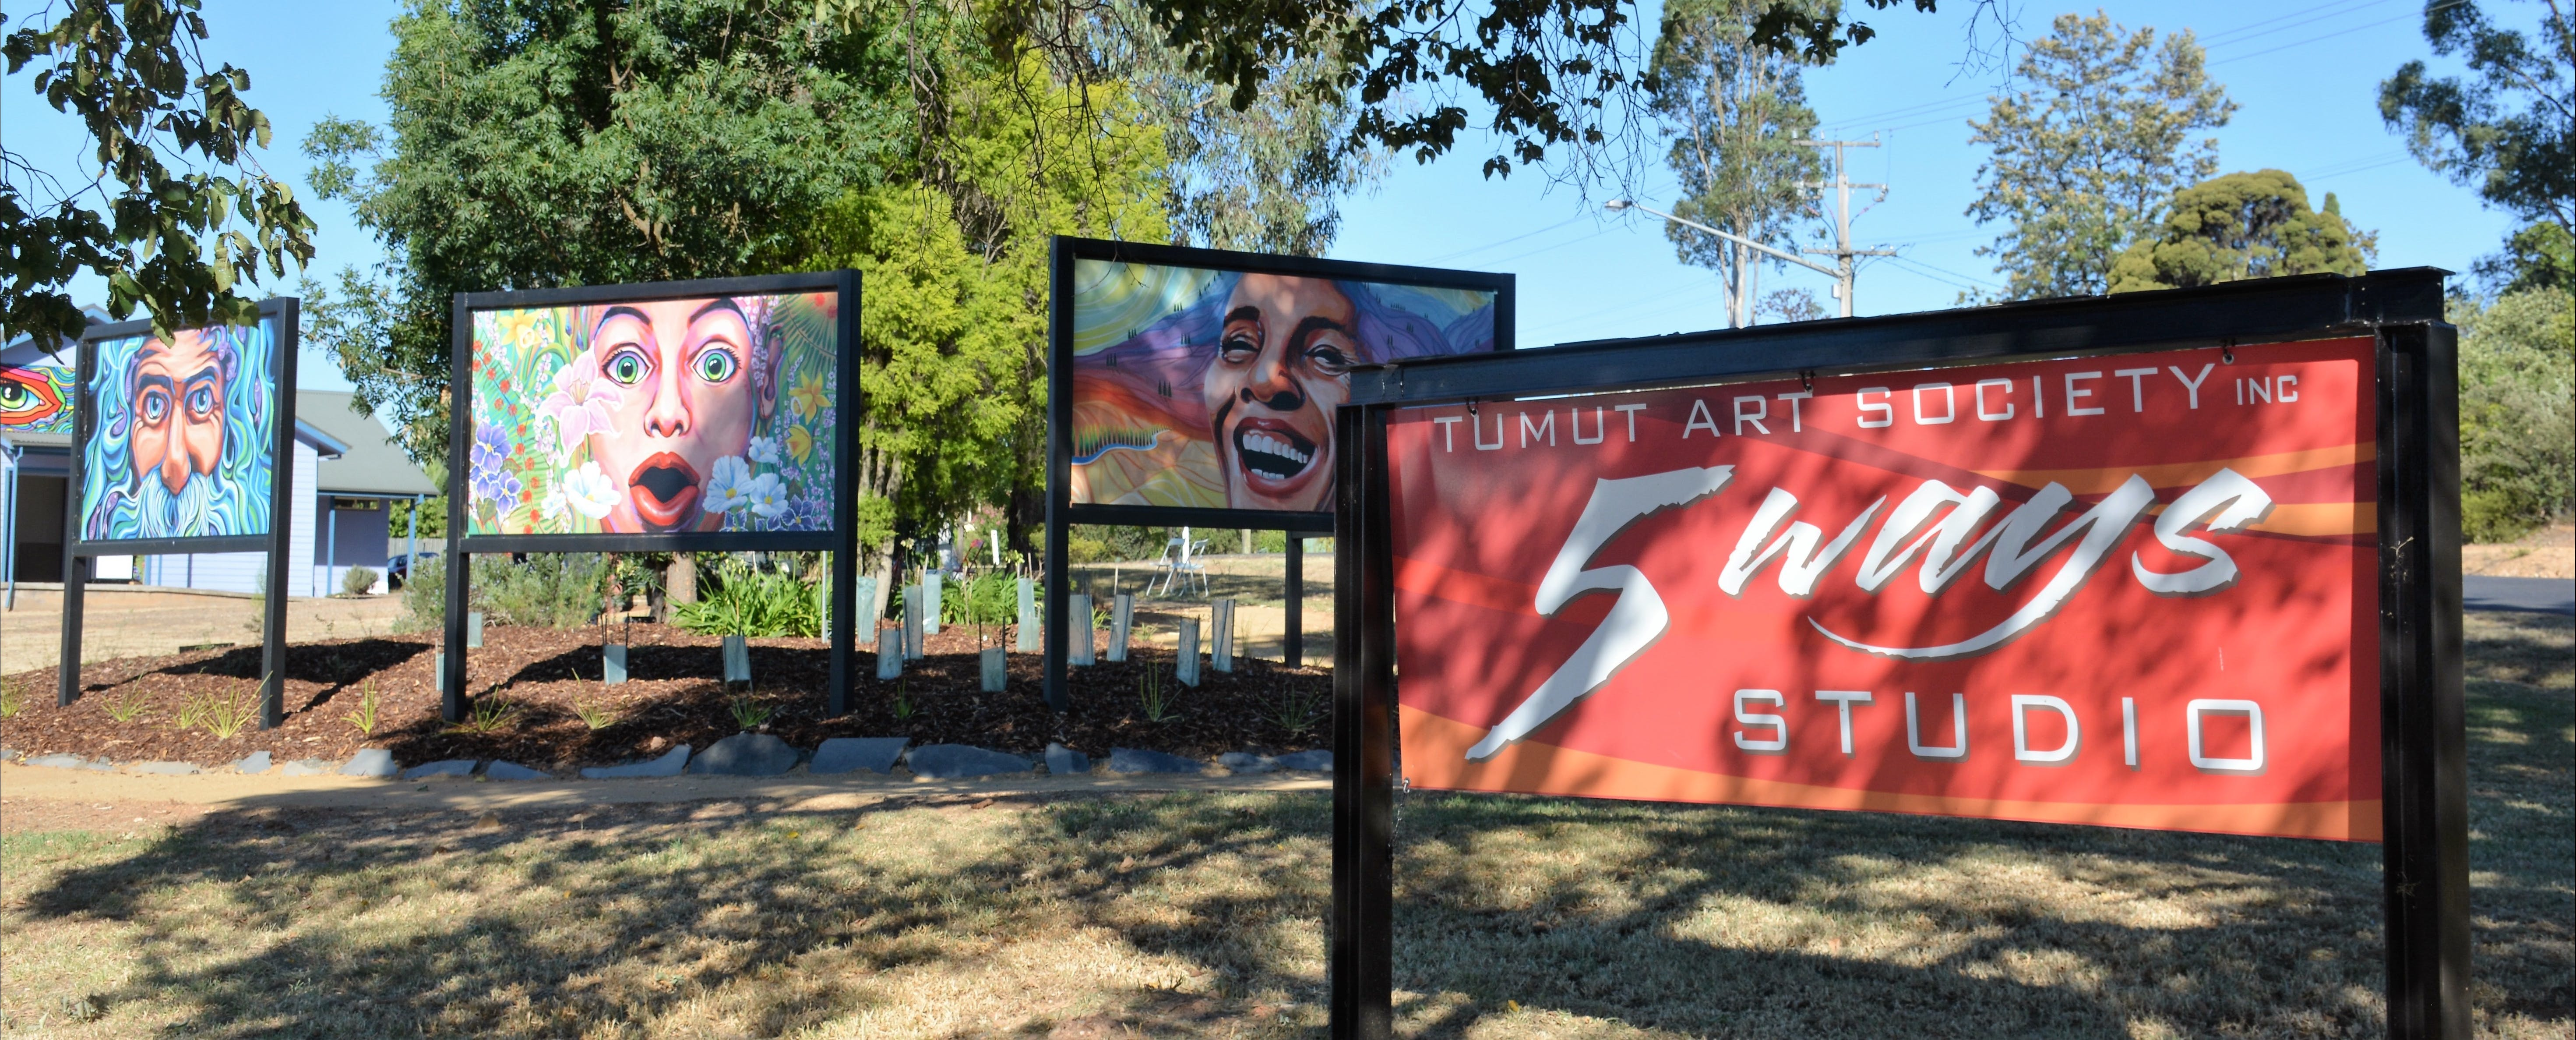 Tumut Art Society 5Ways Gallery - Victoria Tourism